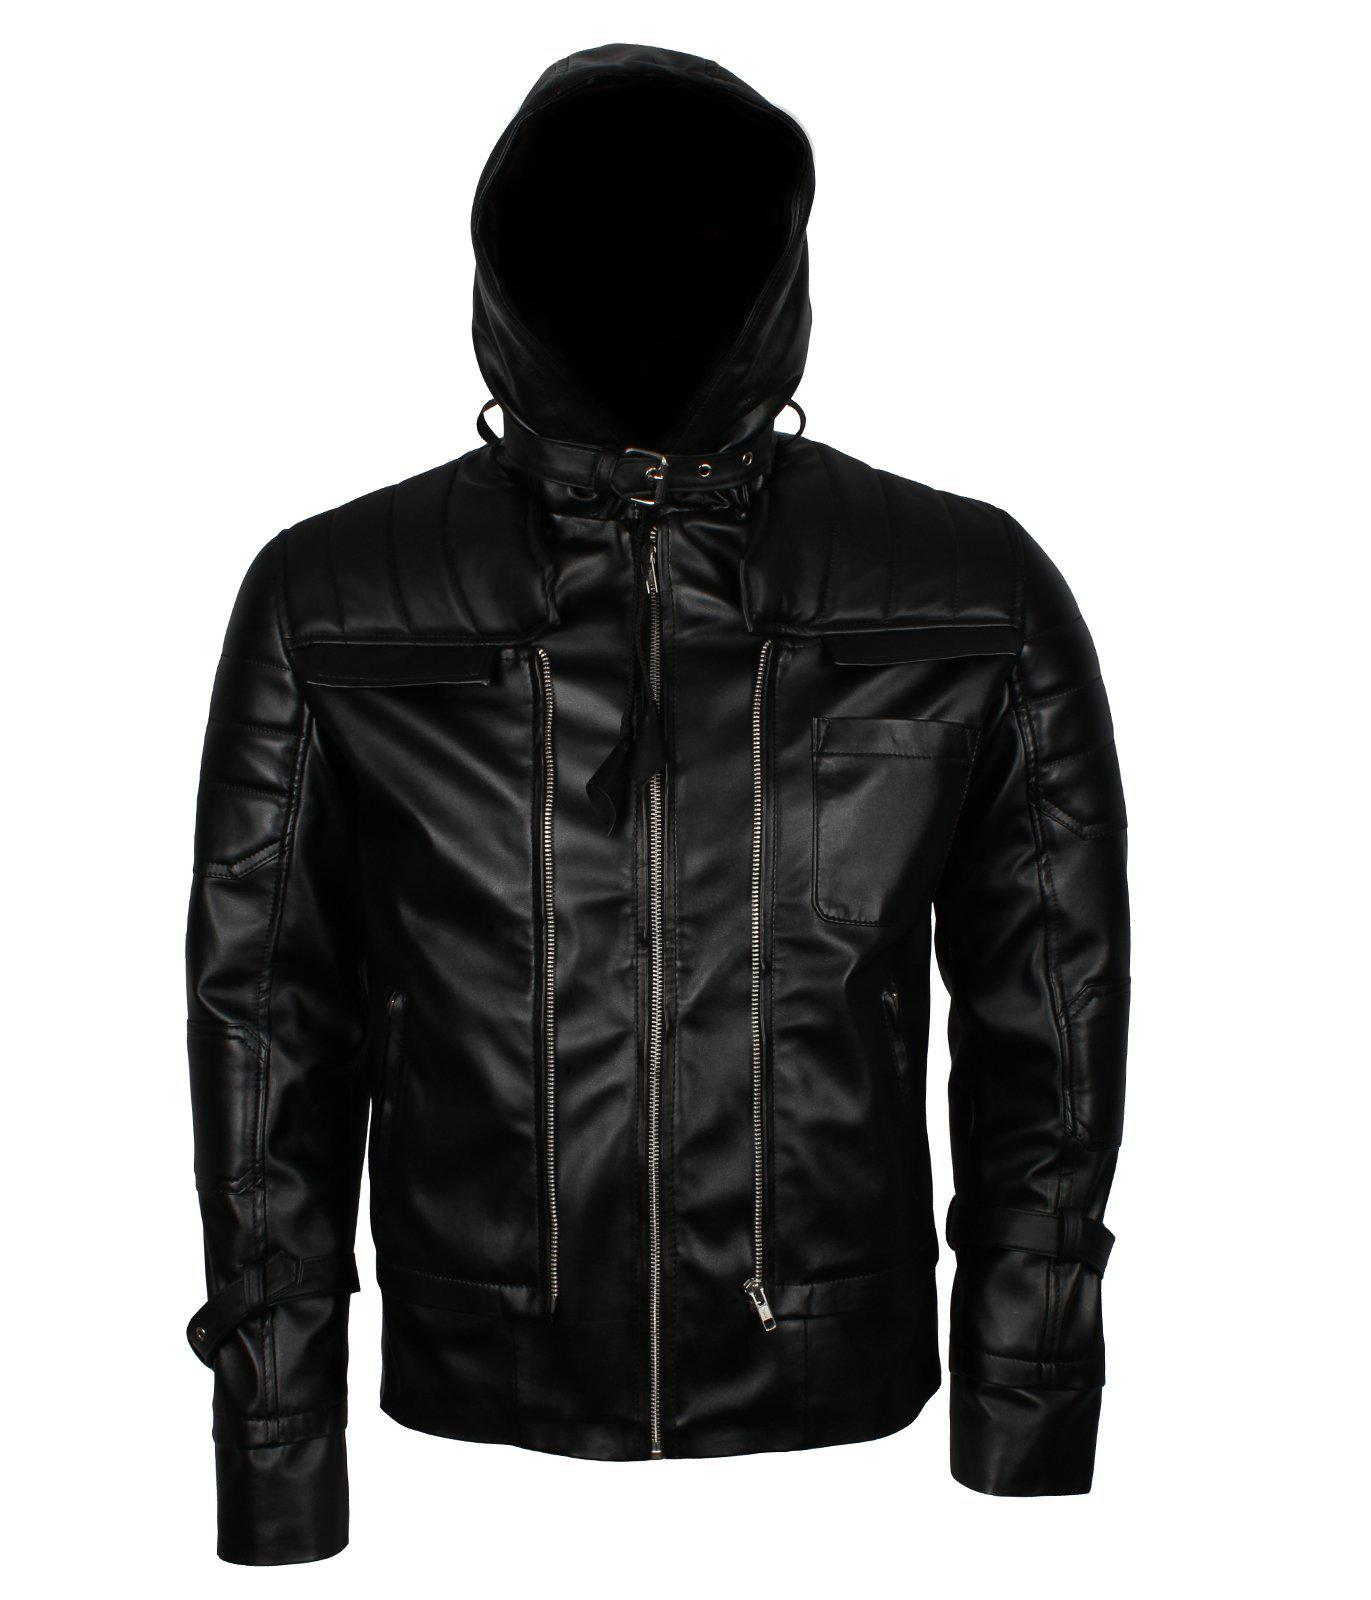 Batman Beyond Hooded Leather Jacket